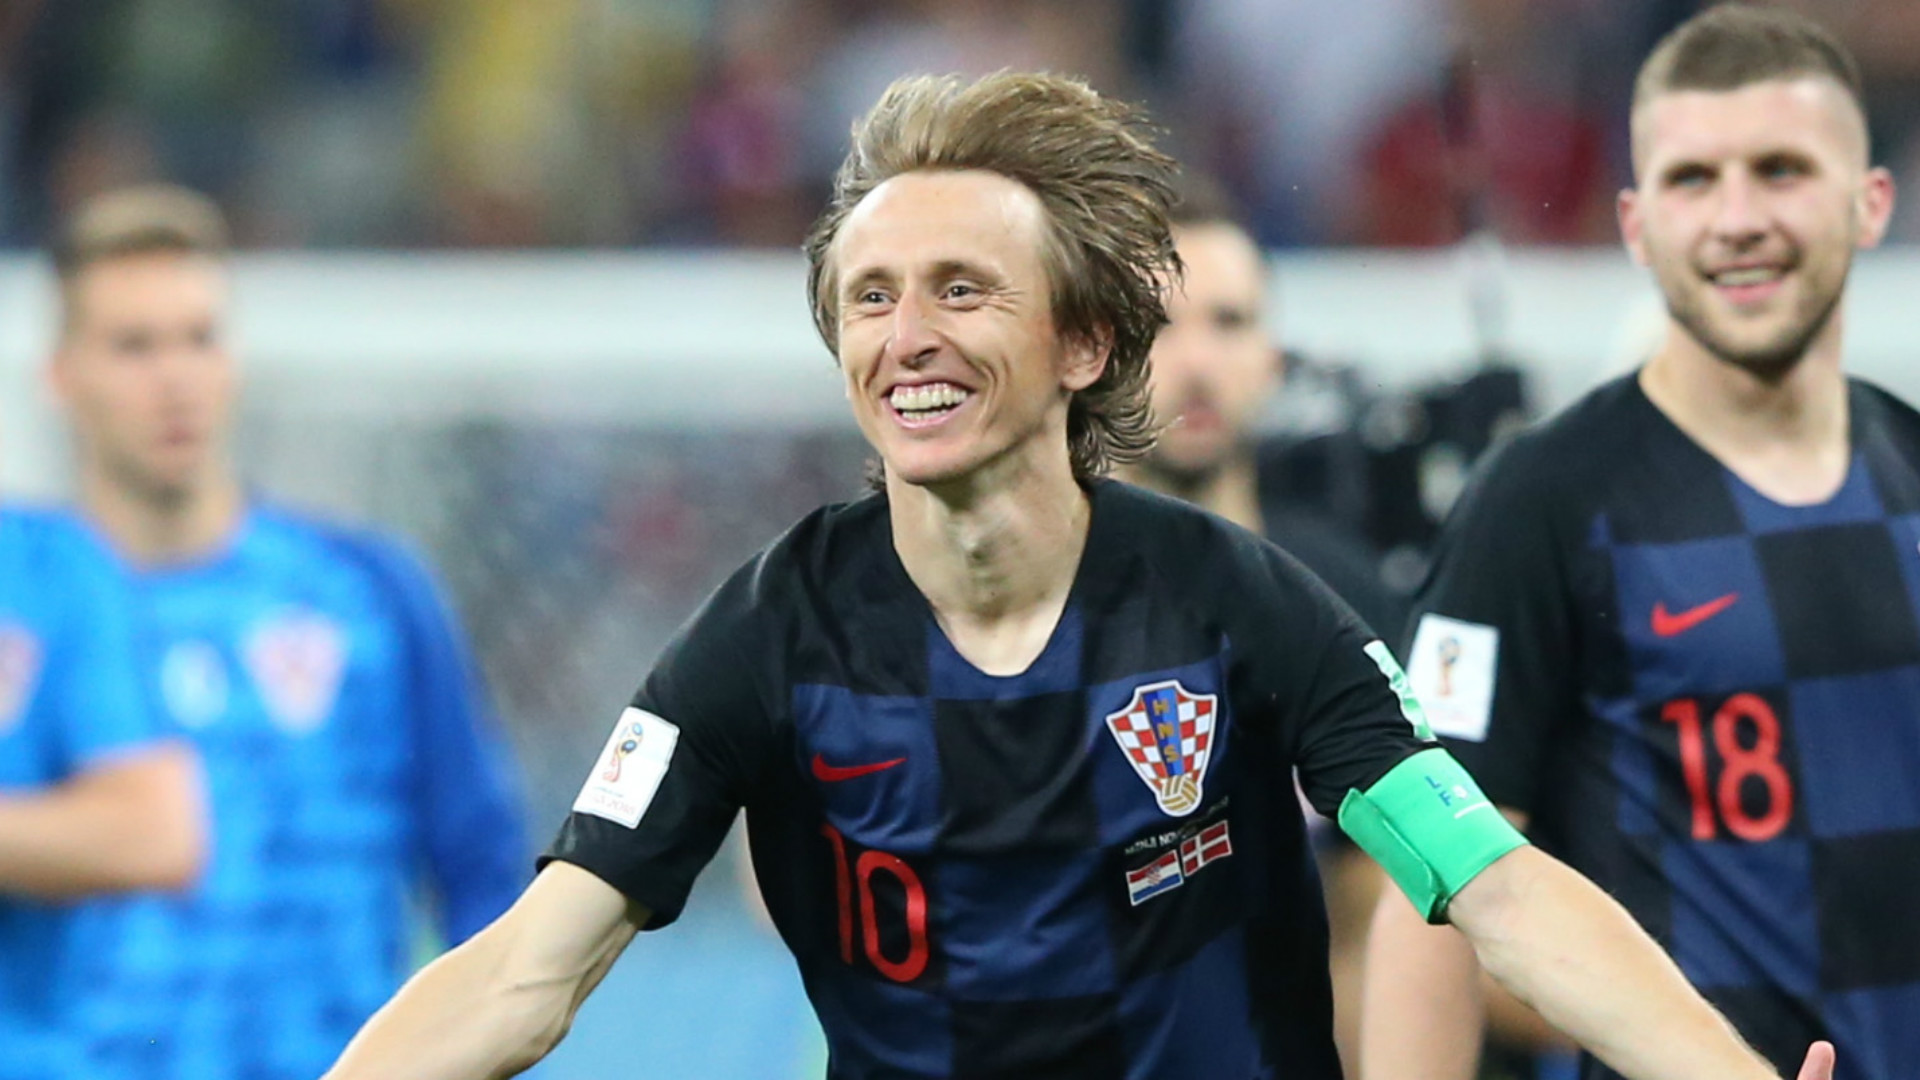 'Moja Domovina!': Croatia celebrate after defeating Russian Federation  by singing patriotic songs